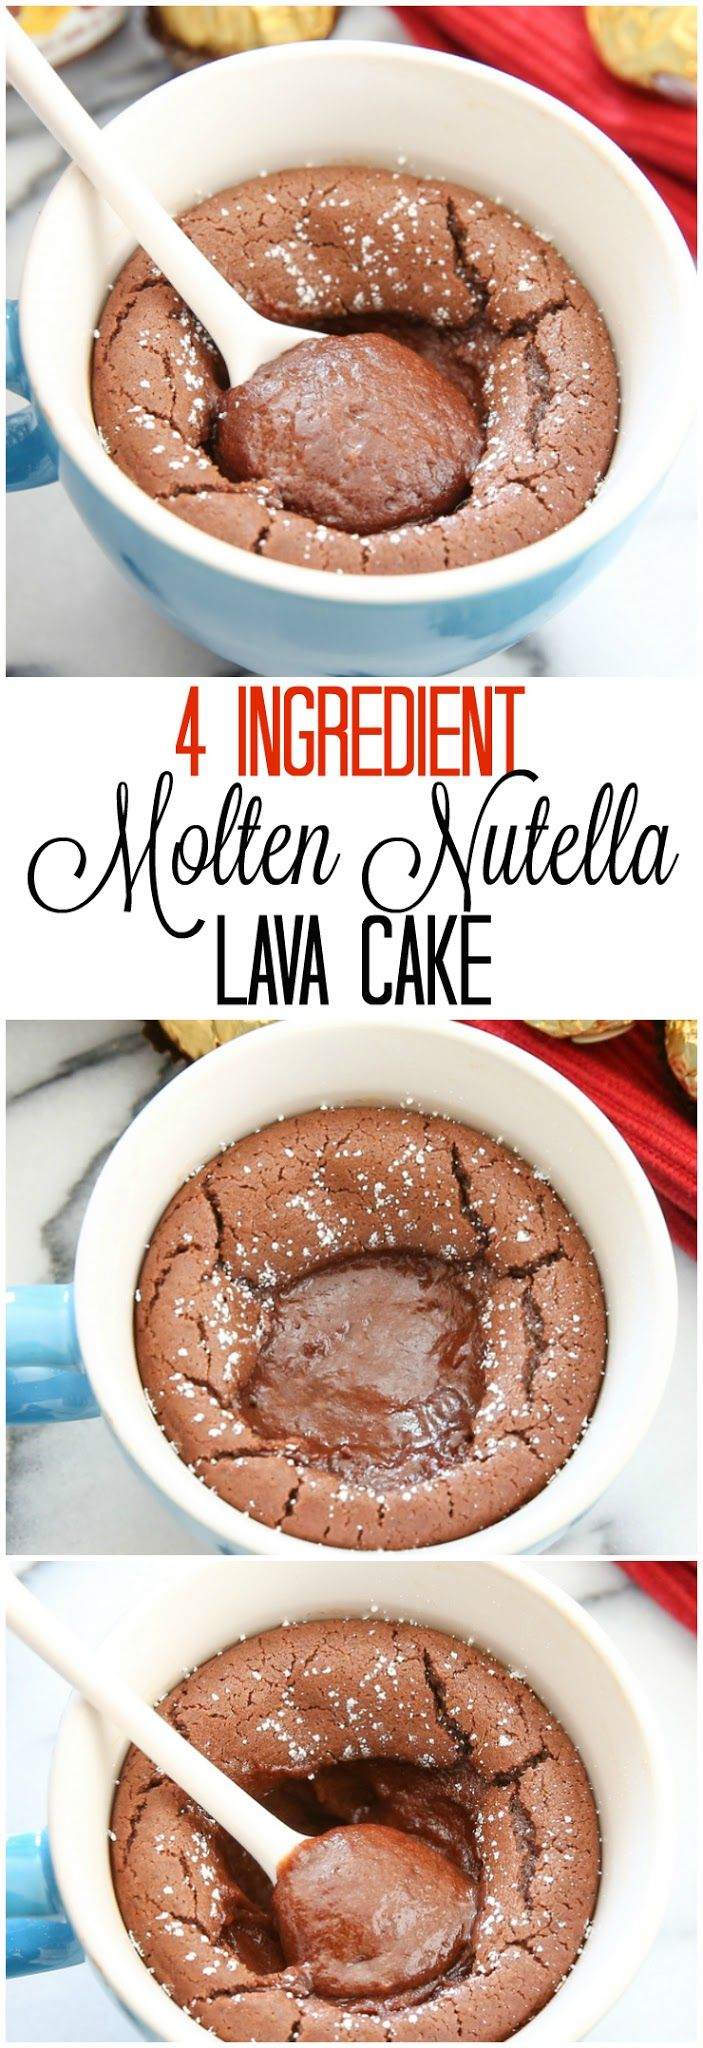 4 Ingredient Molten Nutella Lava Mug Cake. So easy and eggless!